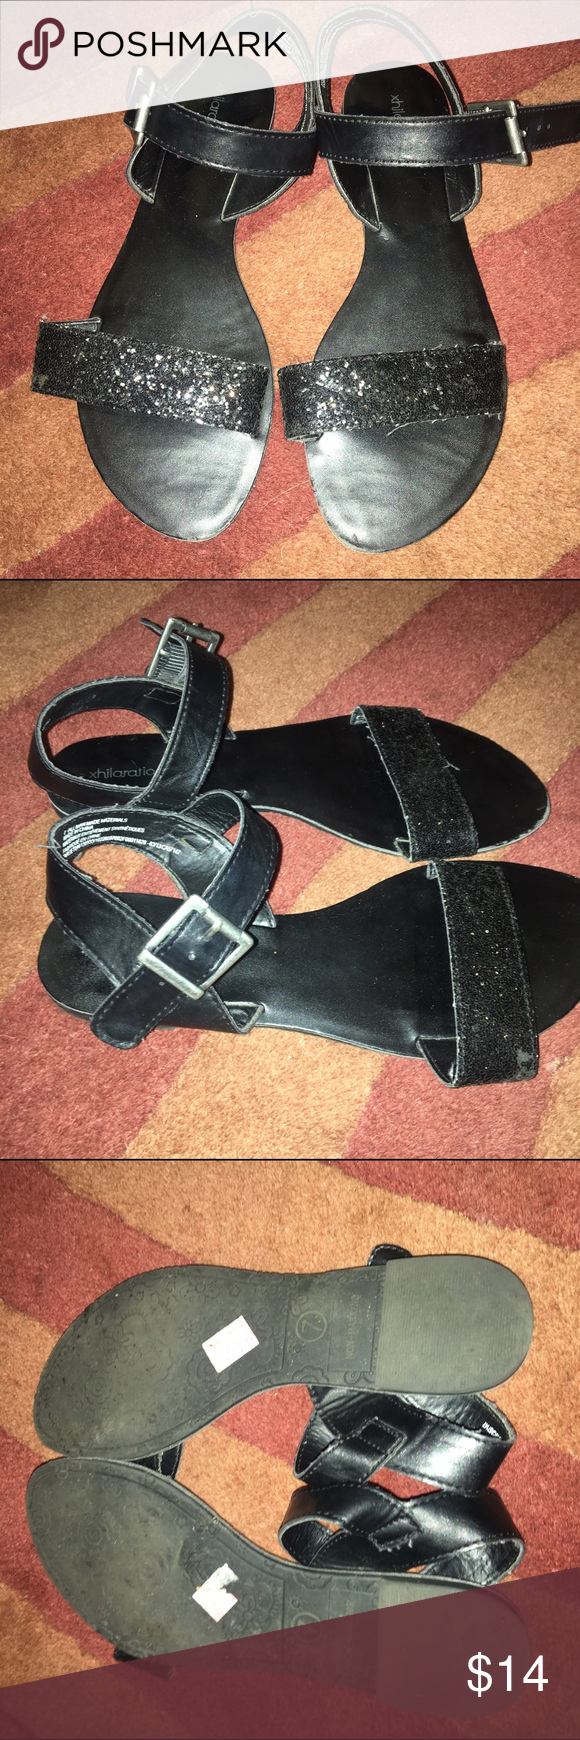 SPARKLY BLACK STRAPPY SANDALS Size 7, too big for me :( super cute though. Black glitter strap at toe and plain black ankle strap. Vegan leather. Worn only once. Shoes Sandals